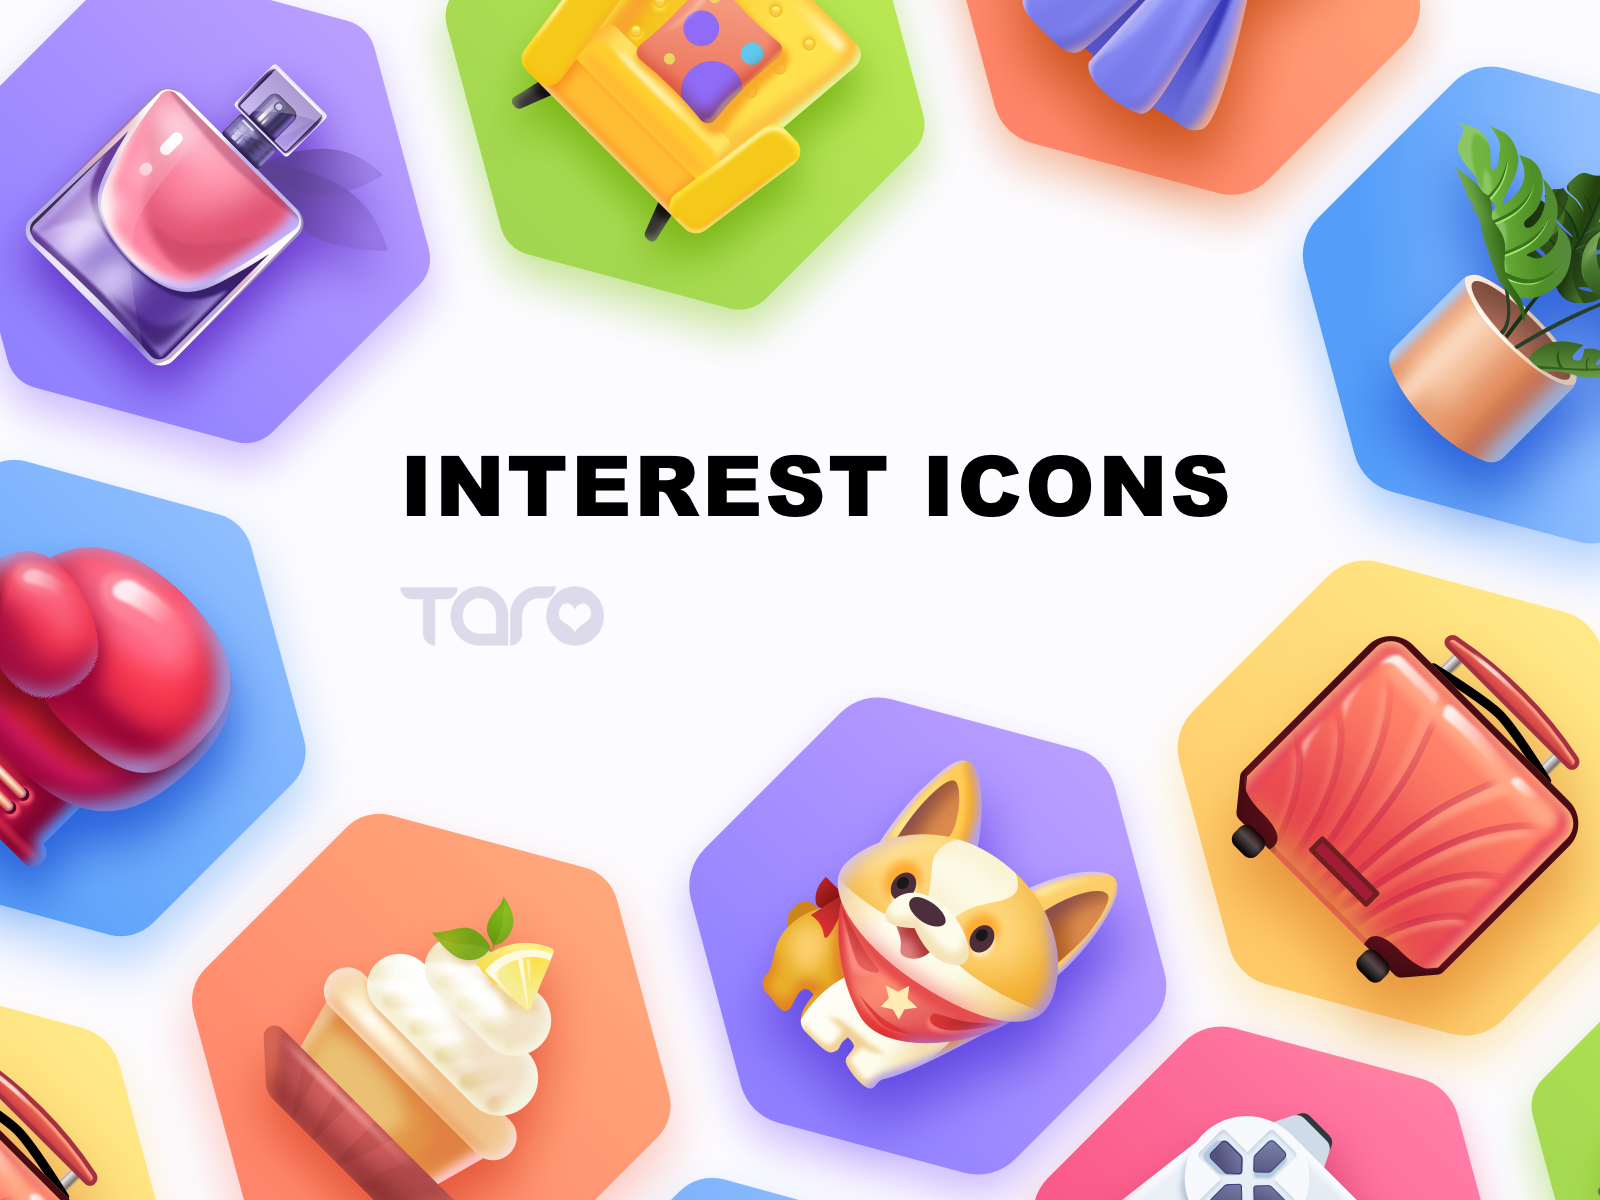 Interest icons by taro